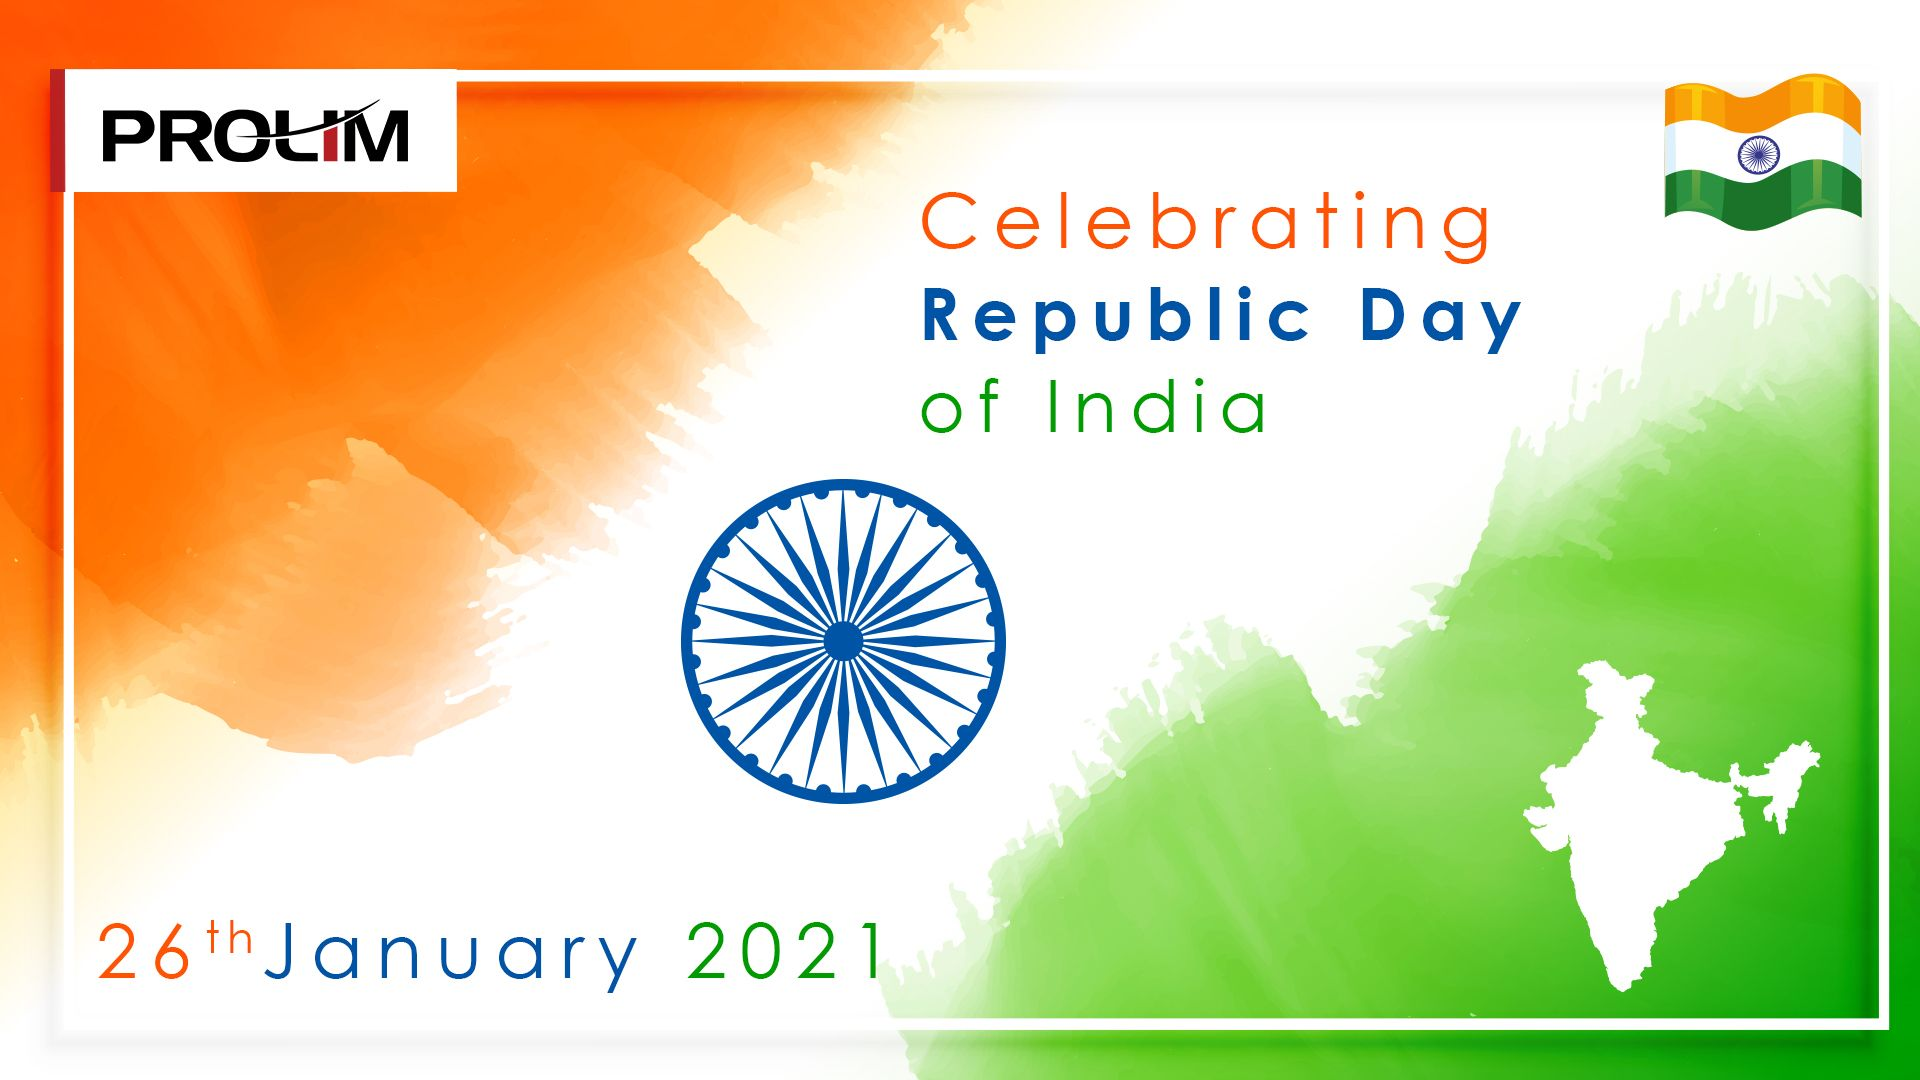 Prolim Family Wishes You Happy Republic Day Of India 2021 In 2021 Republic Day Family Wishes Are You Happy Happy republic day india 2021 wishes